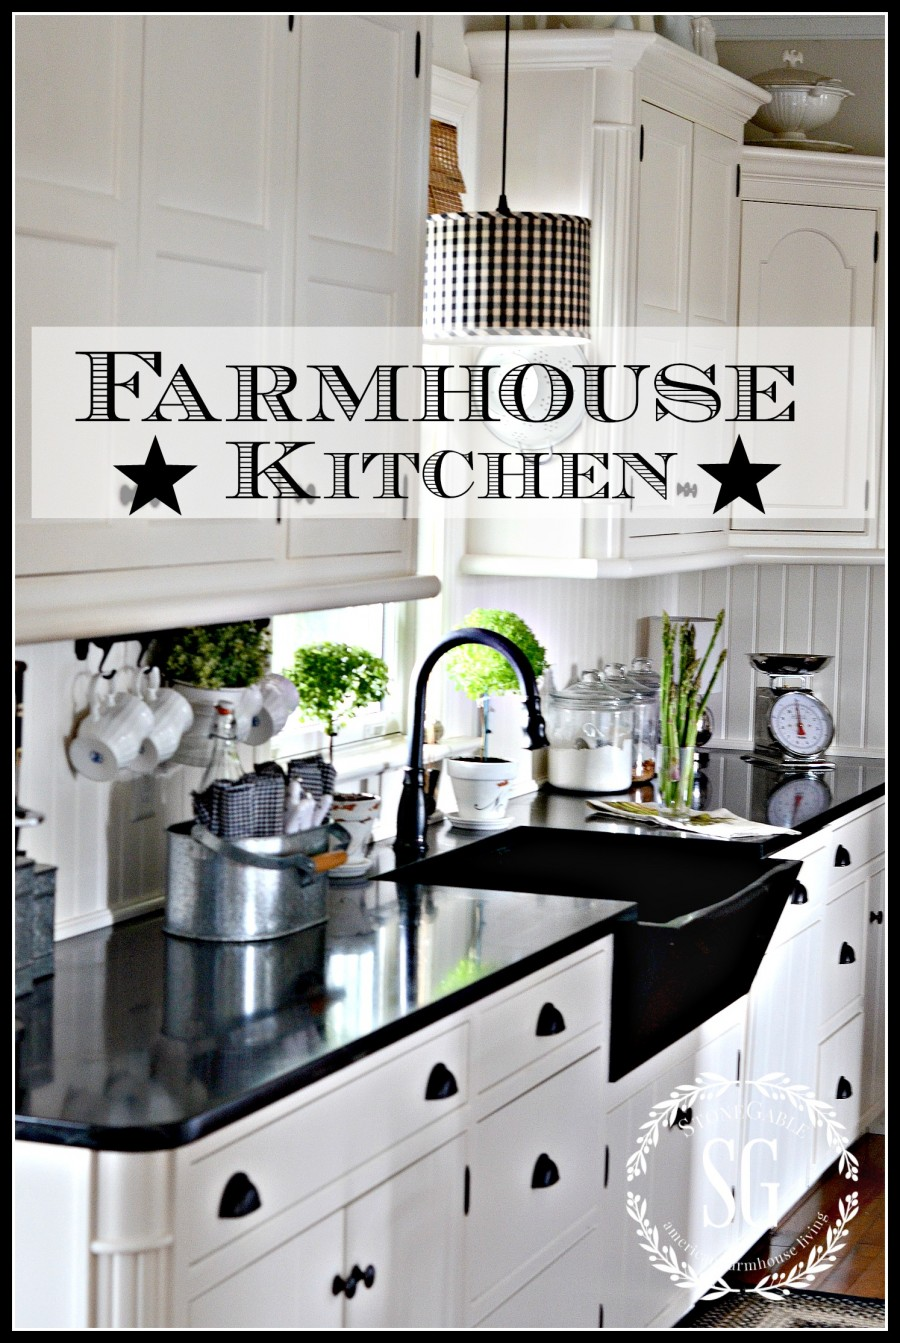 FARMHOUSE KITCHEN -Elements of a modern farmhouse kitchen-stonegableblog.com